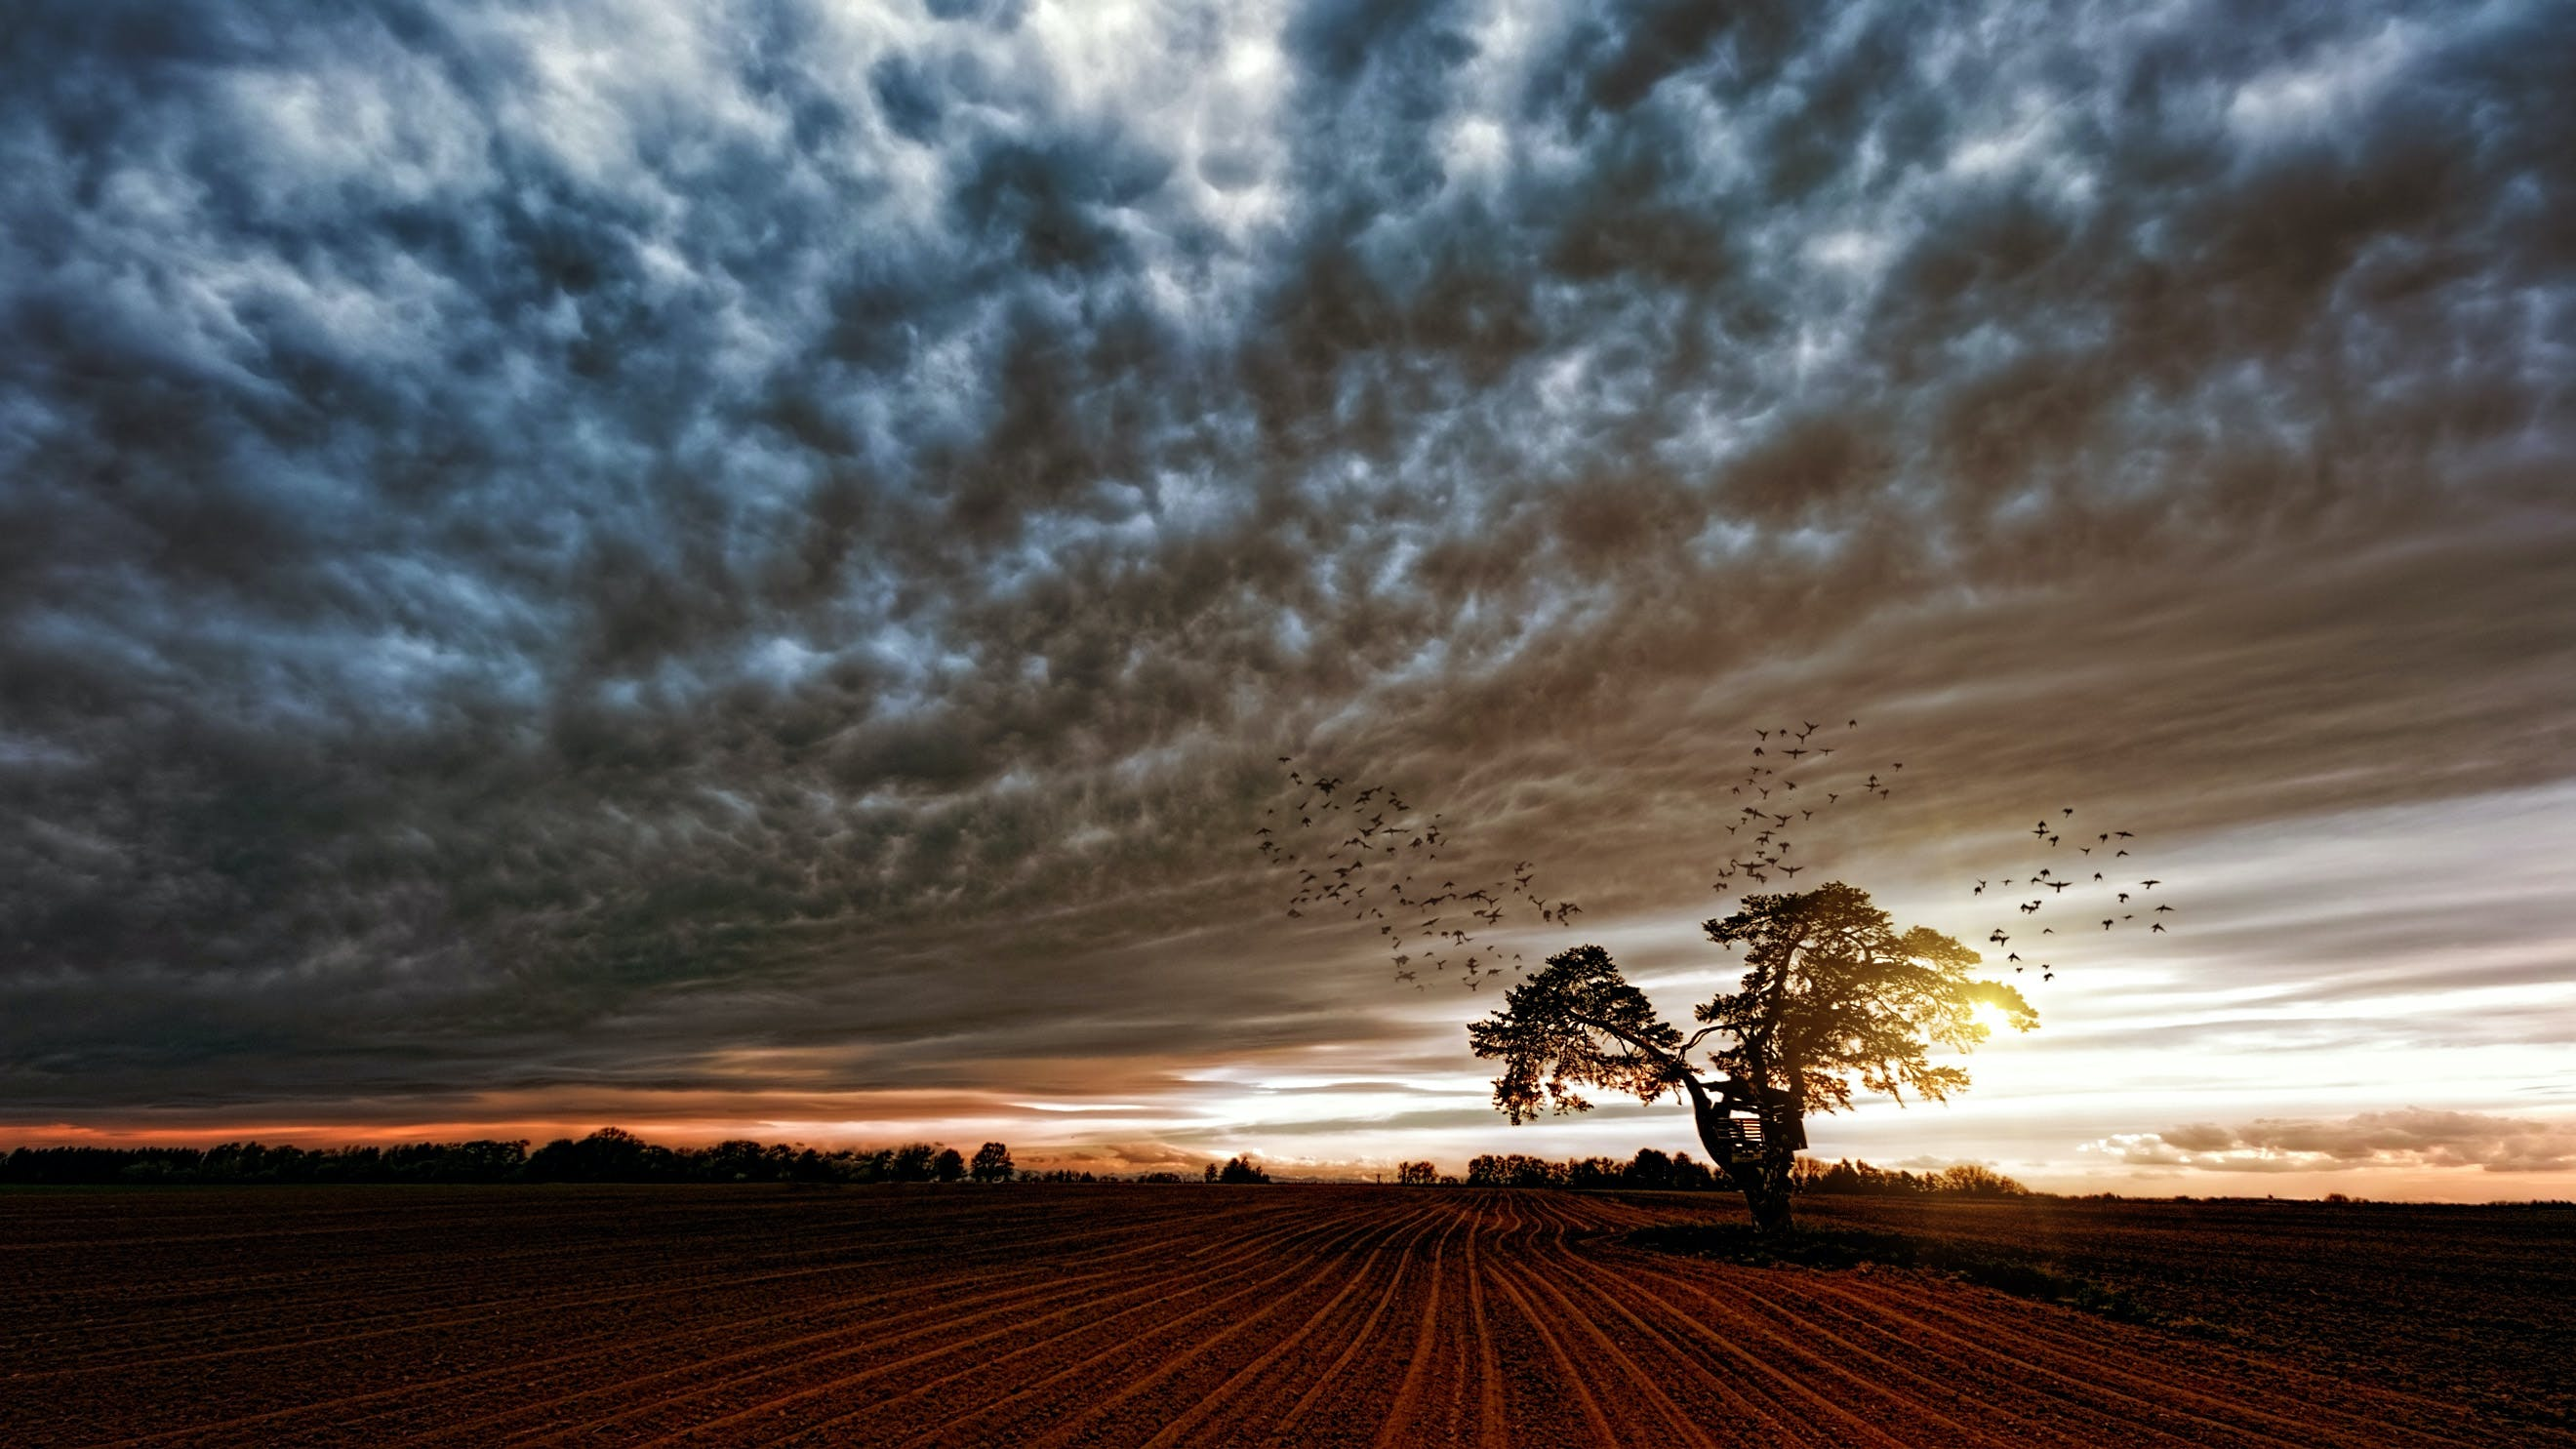 Silhouette of Trees Under Cloudy Skies